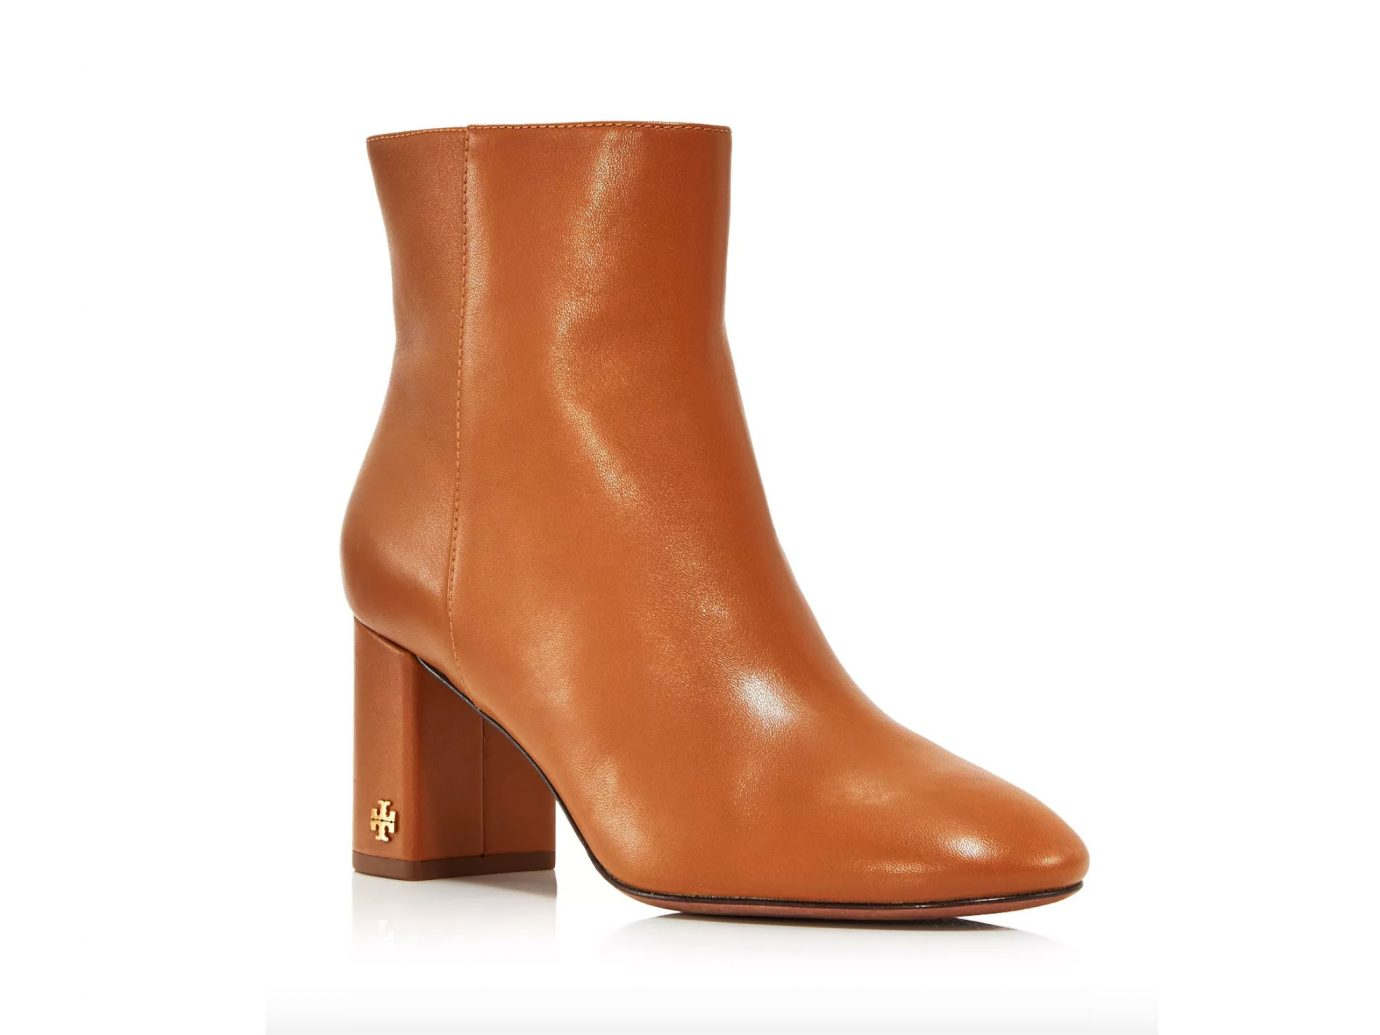 Bloomingdale's Tory Burch Women's Brooke Round Toe Leather Booties